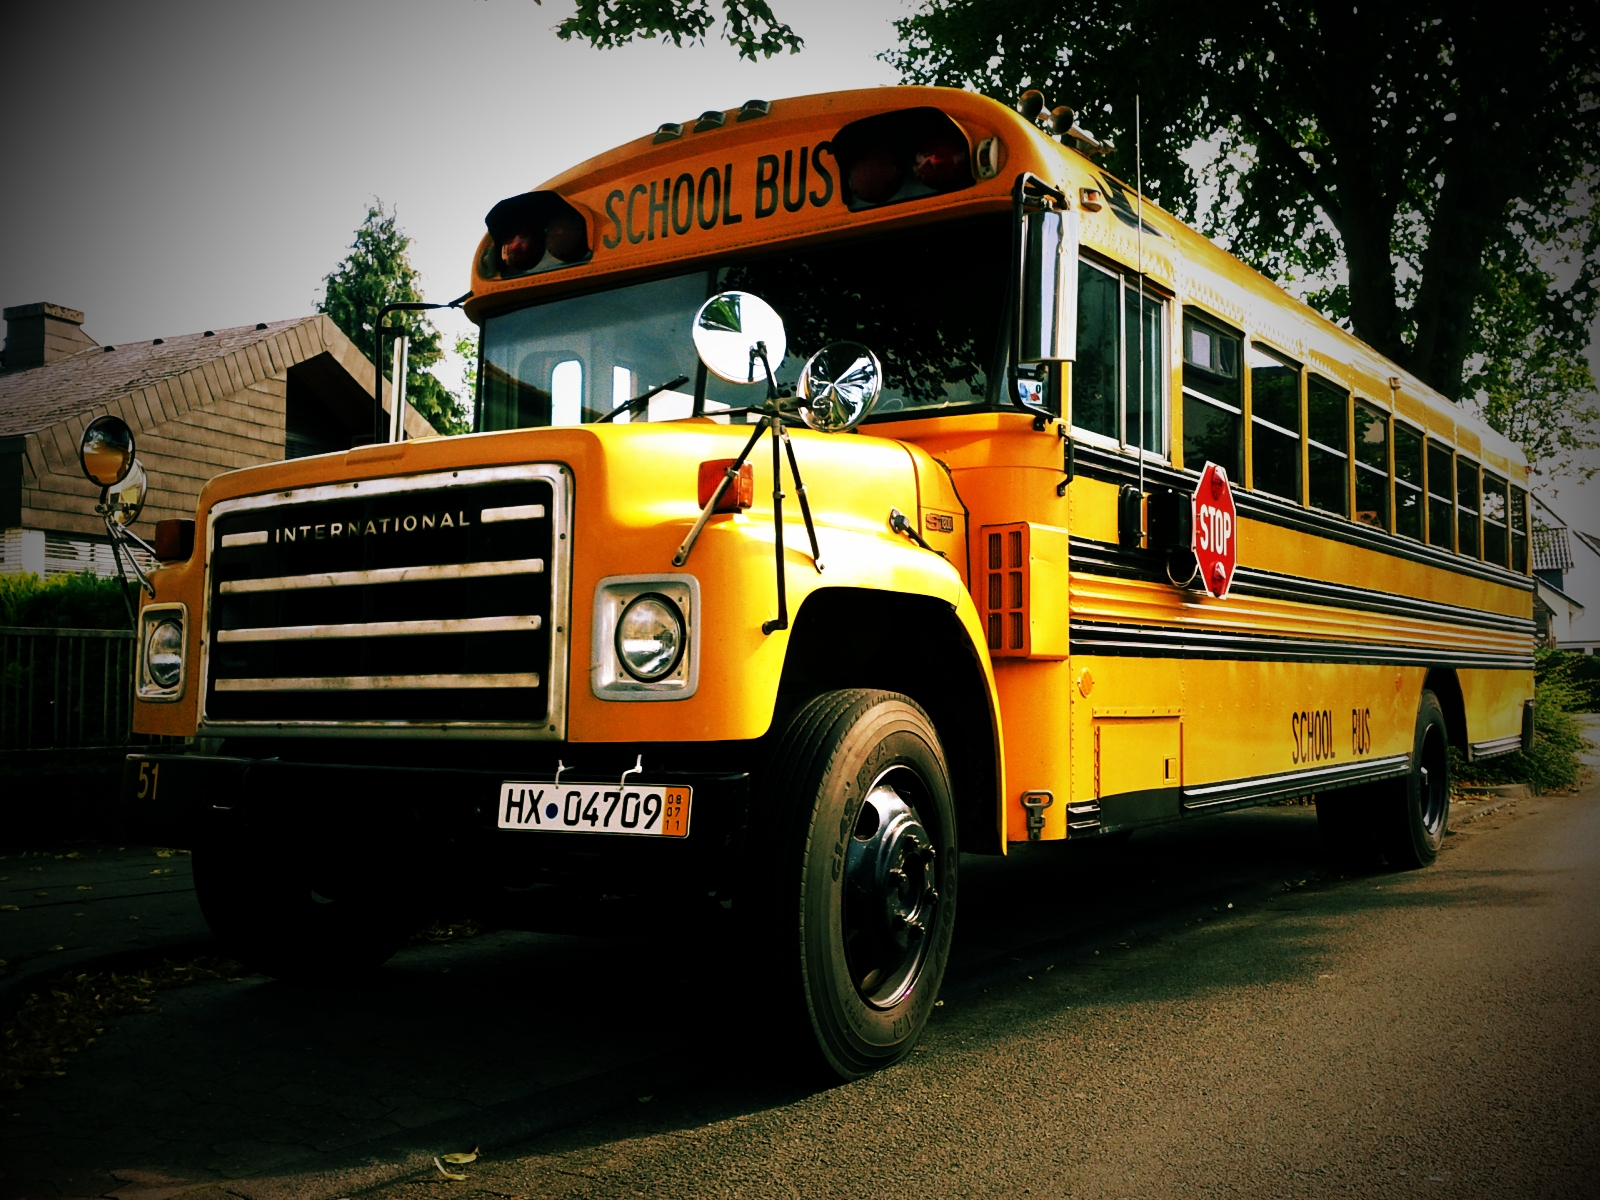 Field Trip Permission Slips: Everything You Need To Know